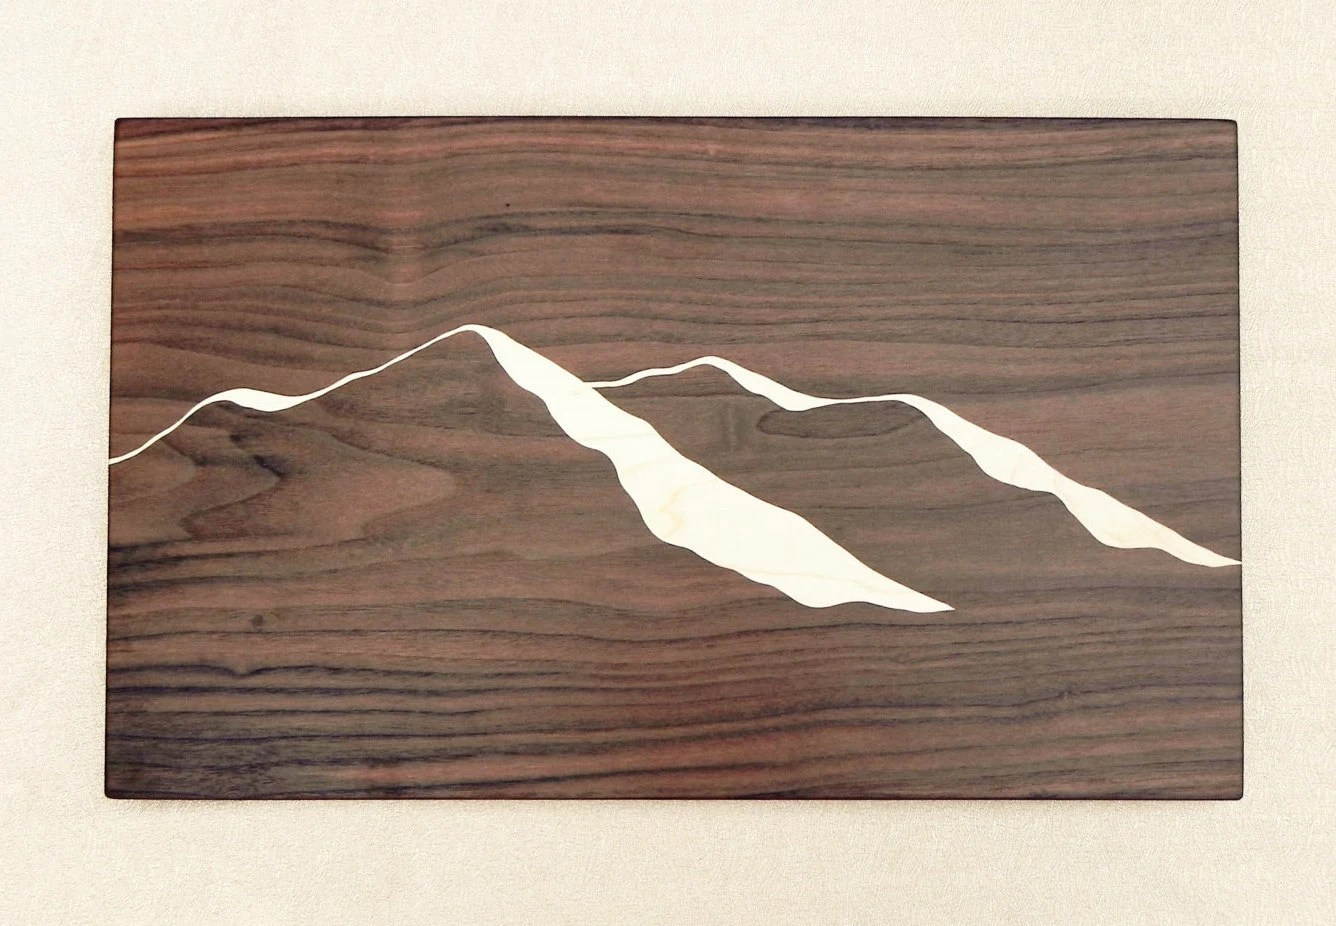 Unusual Cutting Boards Unique Dark Wood Cutting Board With Mountain Ridge View